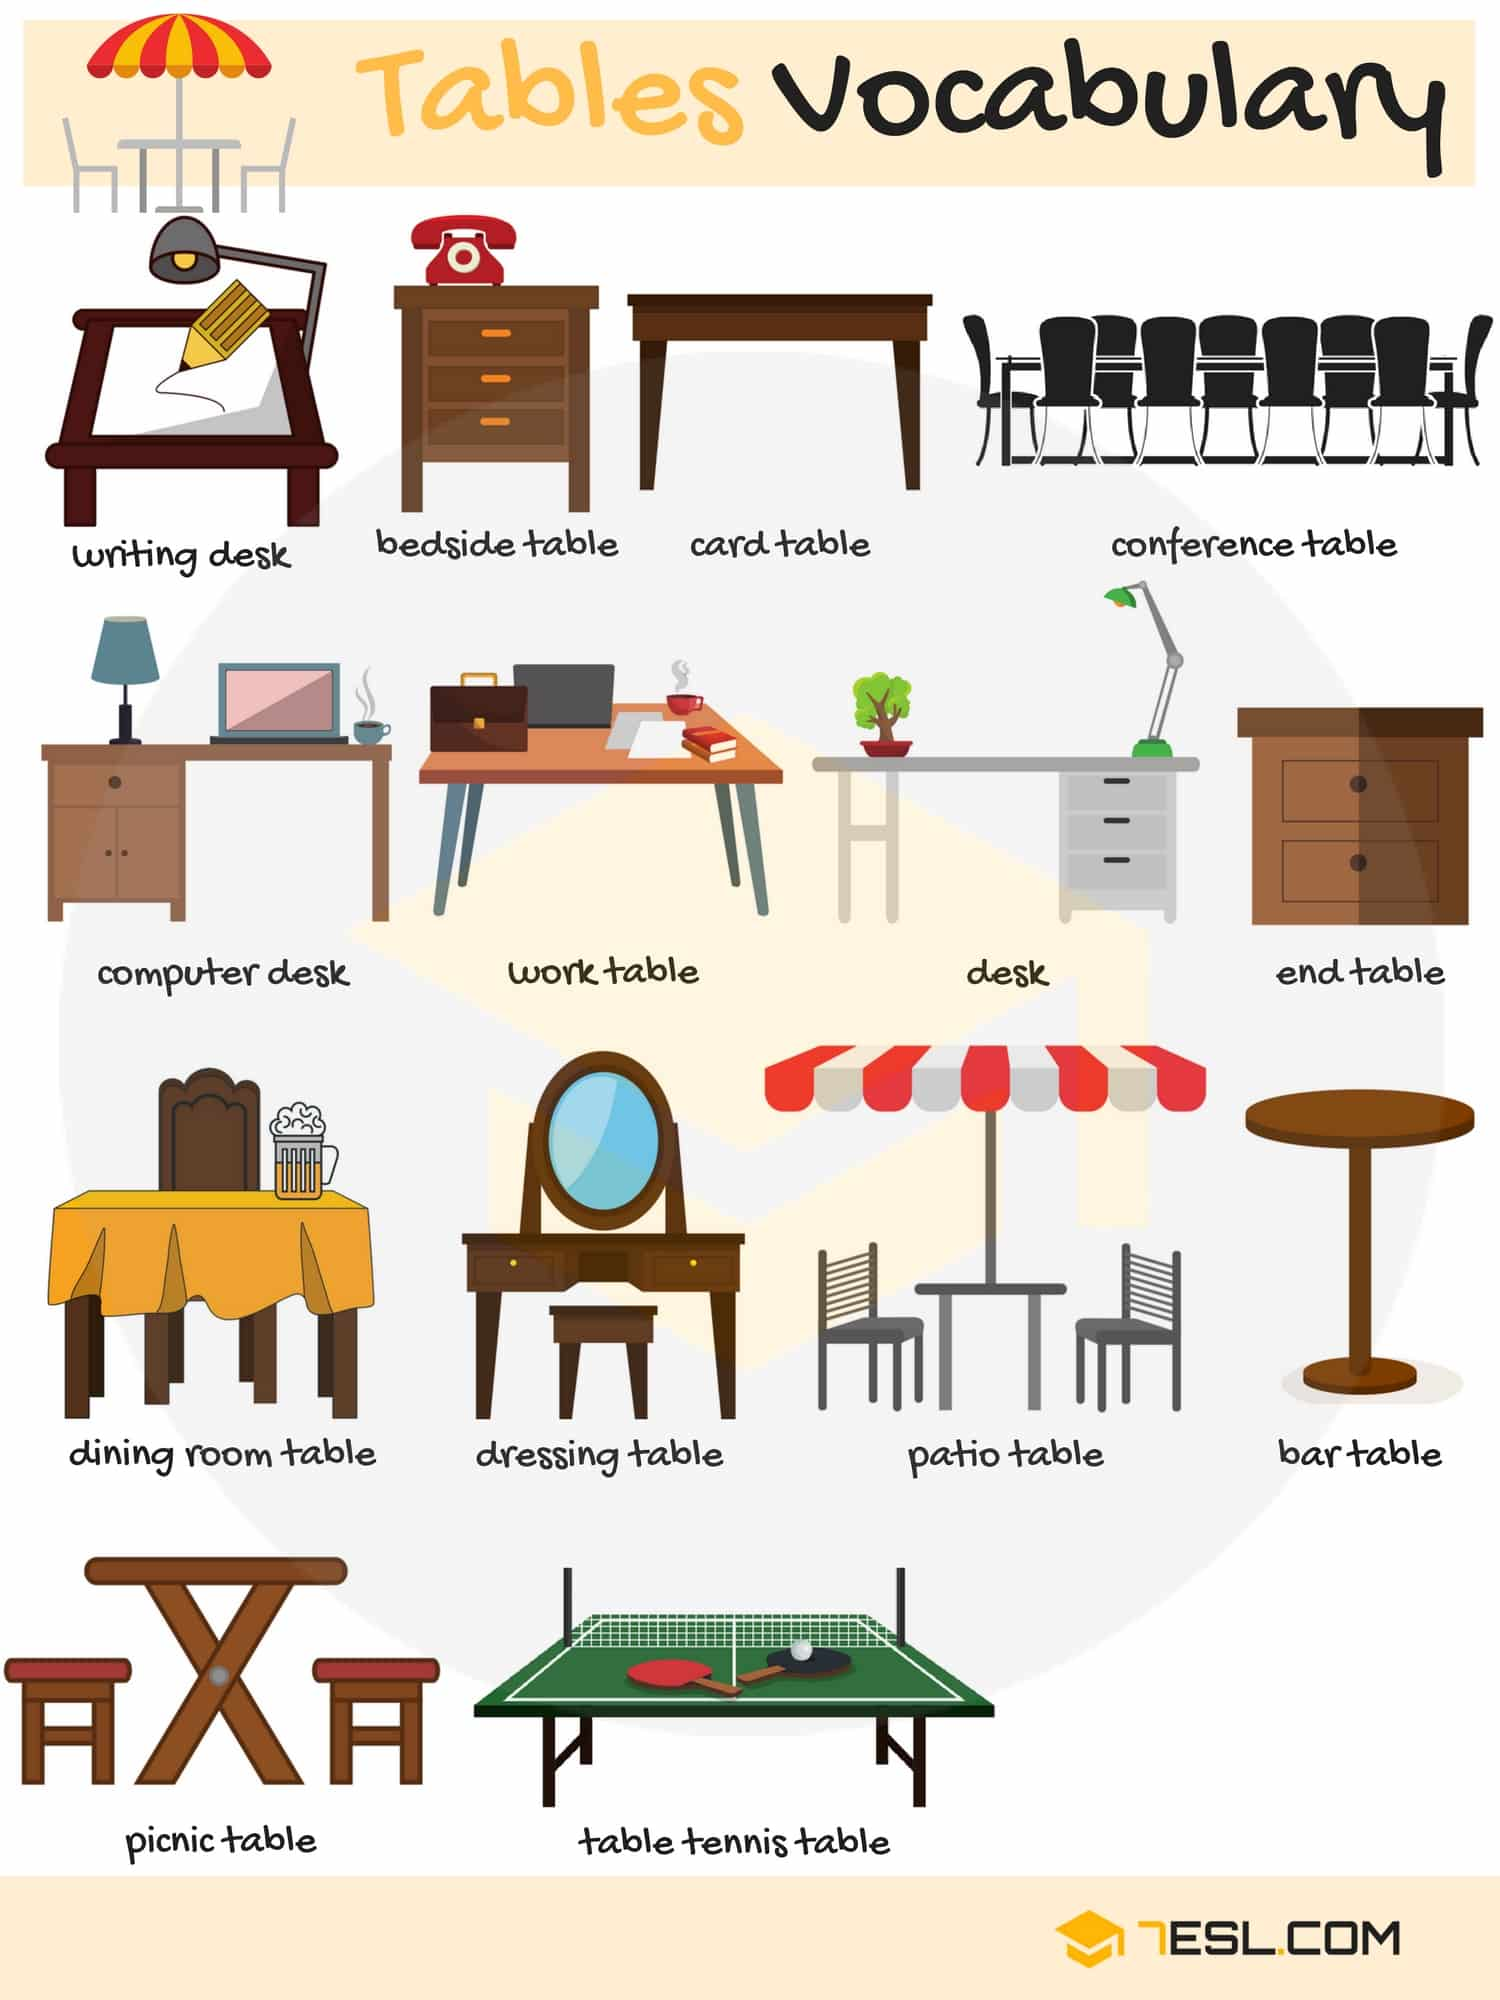 Tables Vocabulary in English | Image